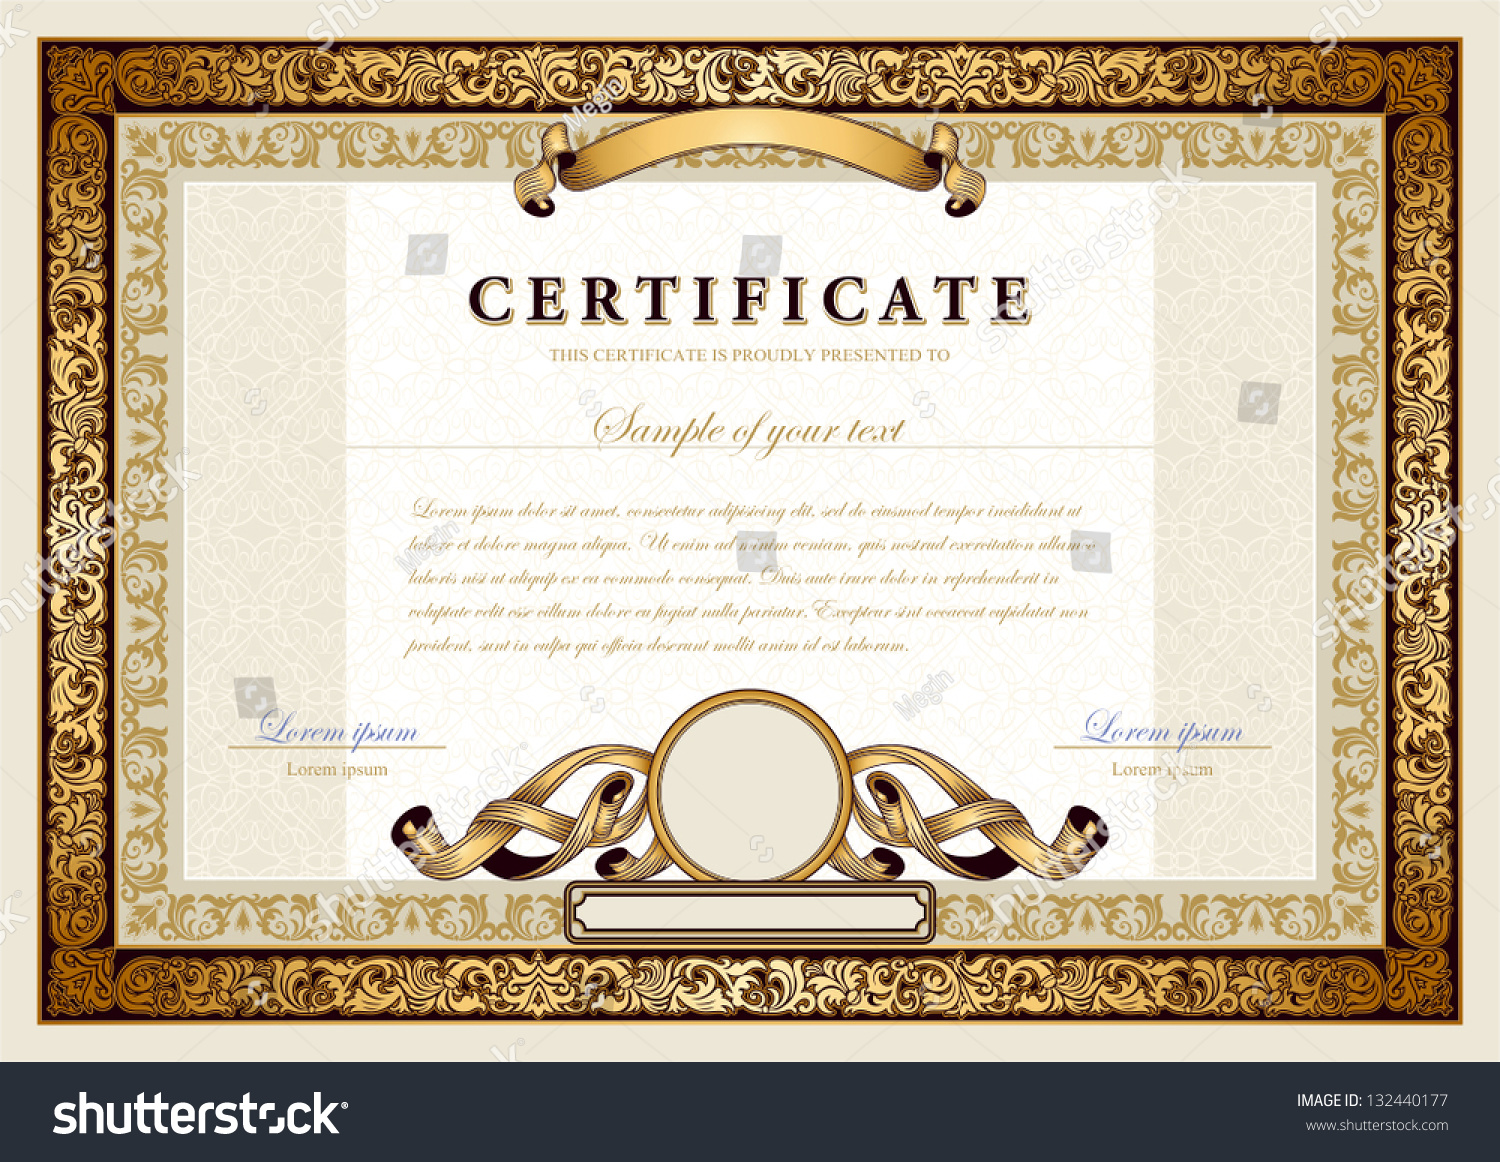 vintage certificate gold luxury or ntal frames stock vector vintage certificate gold luxury or ntal frames coupon diploma voucher